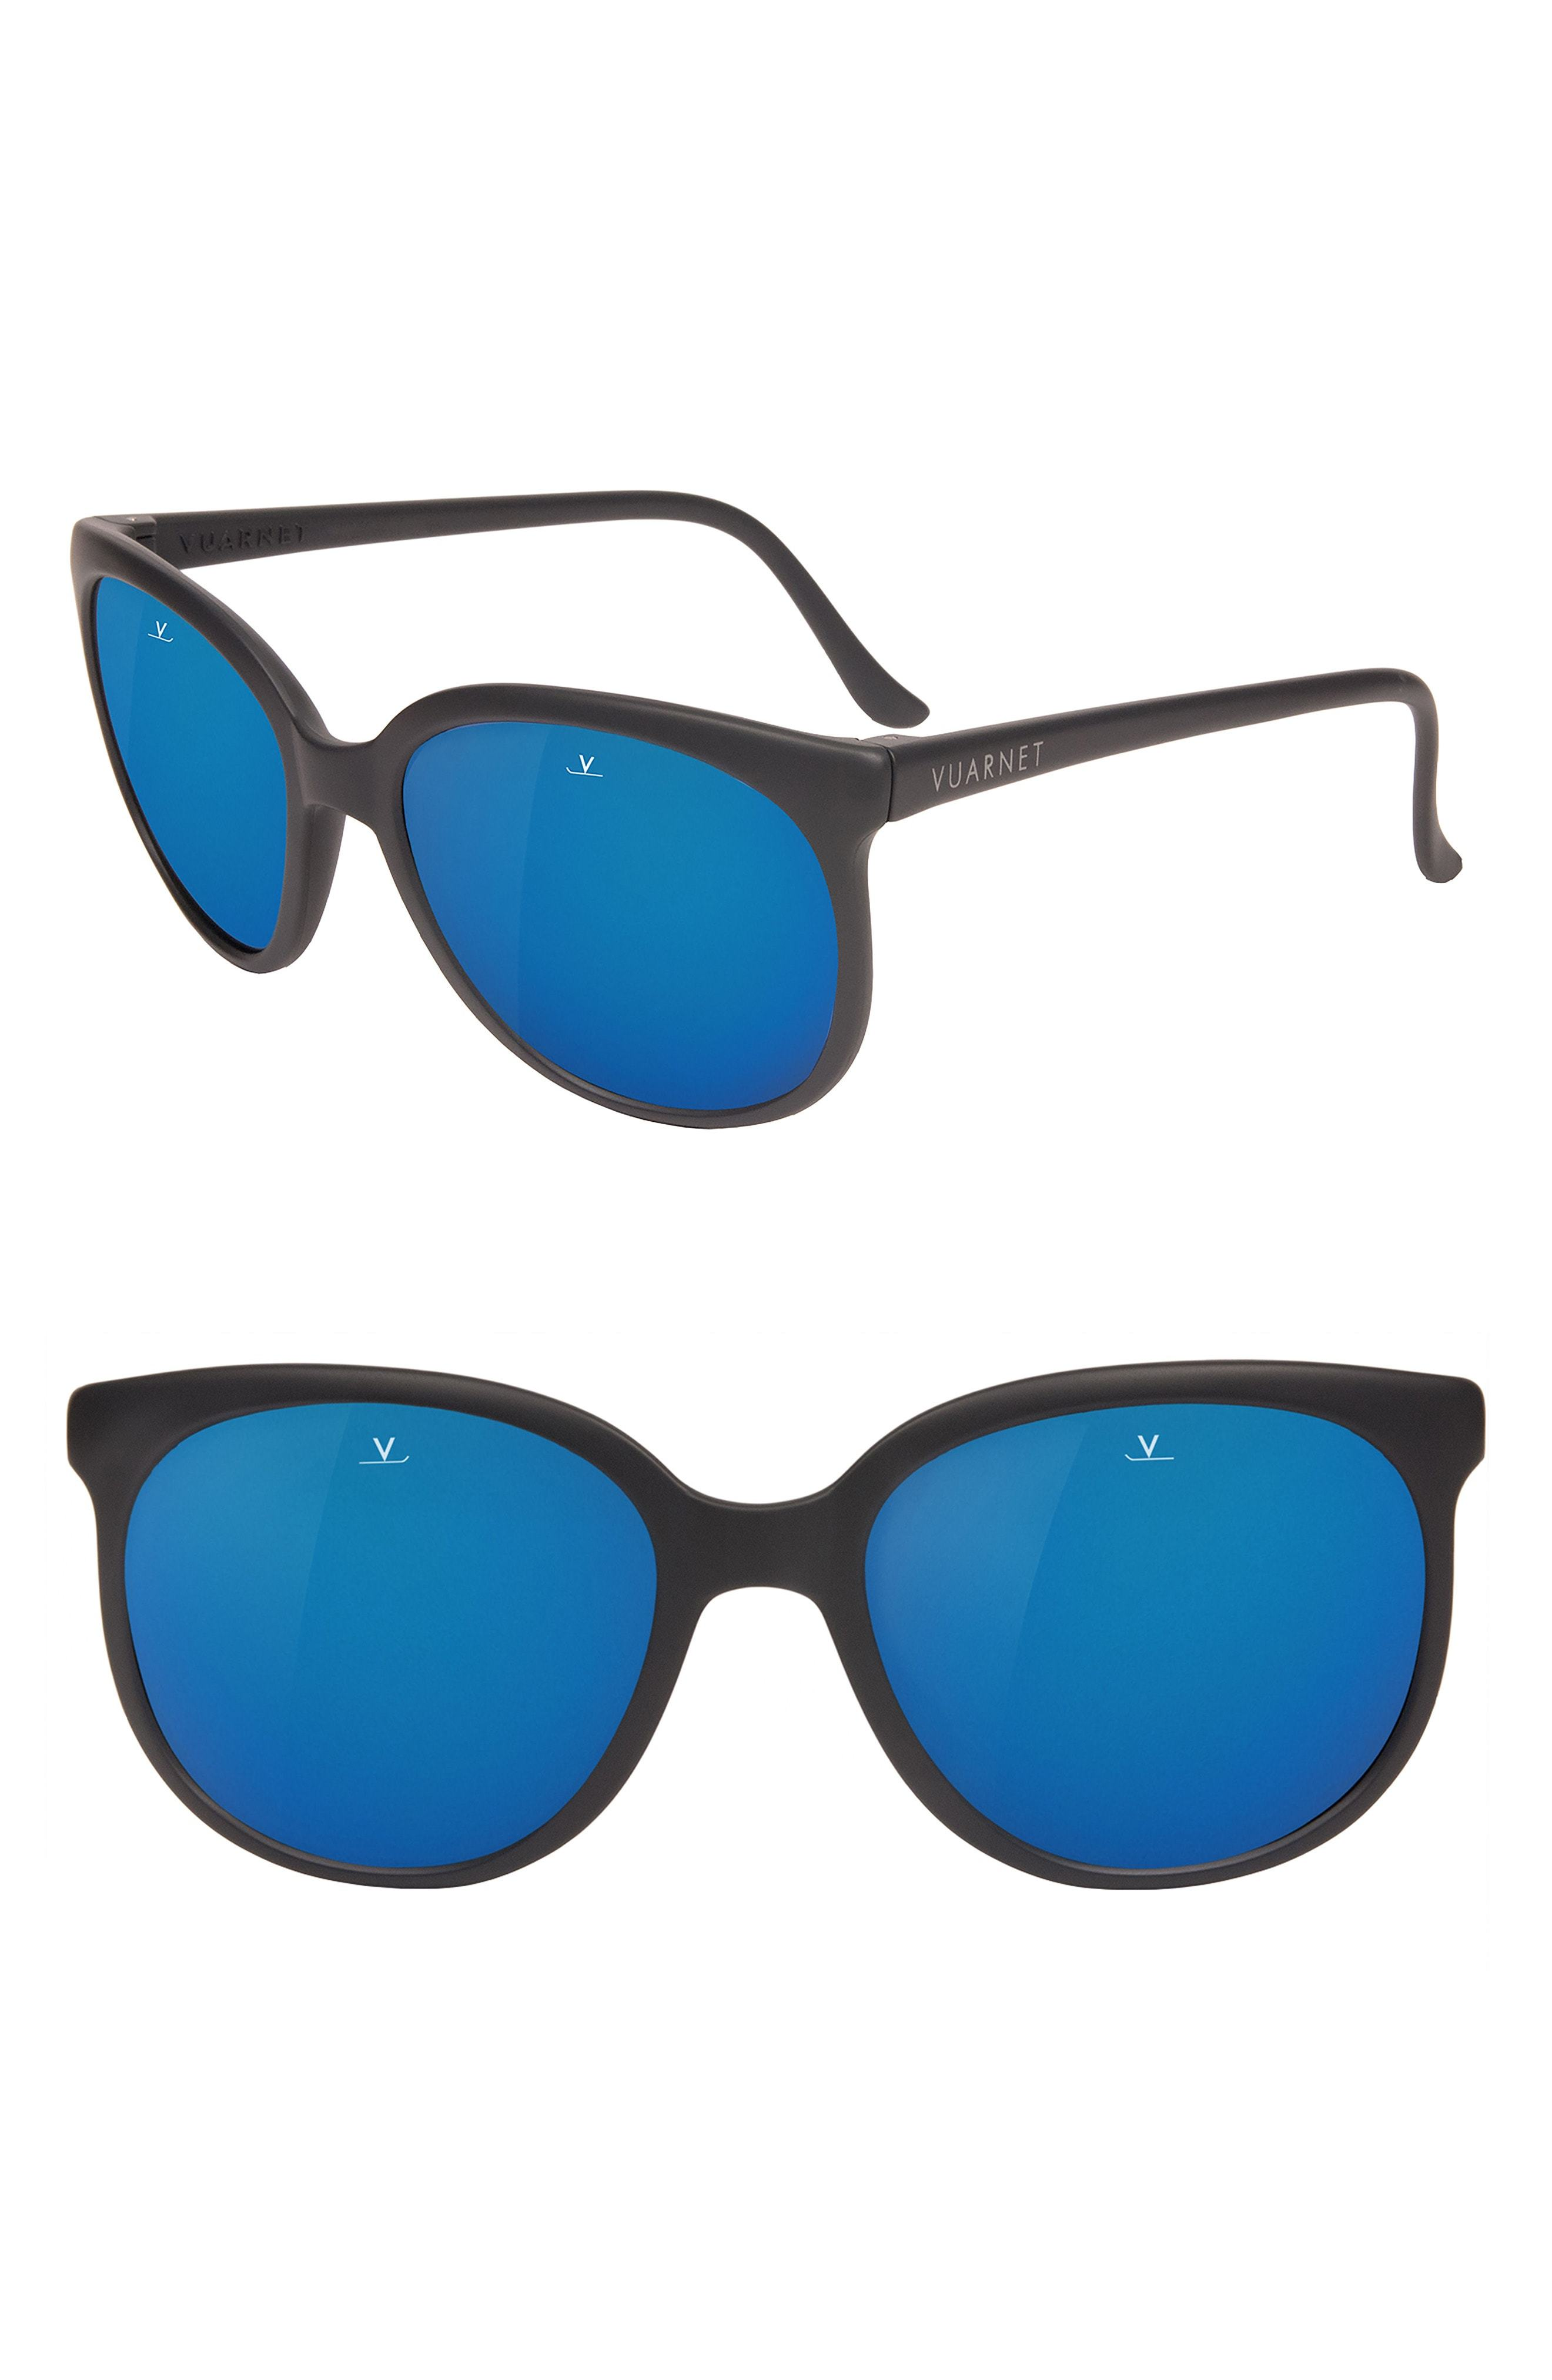 Polarized Legends 02 Sunglasses Legends 55mm 02 55mm Polarized OikXPuTZ